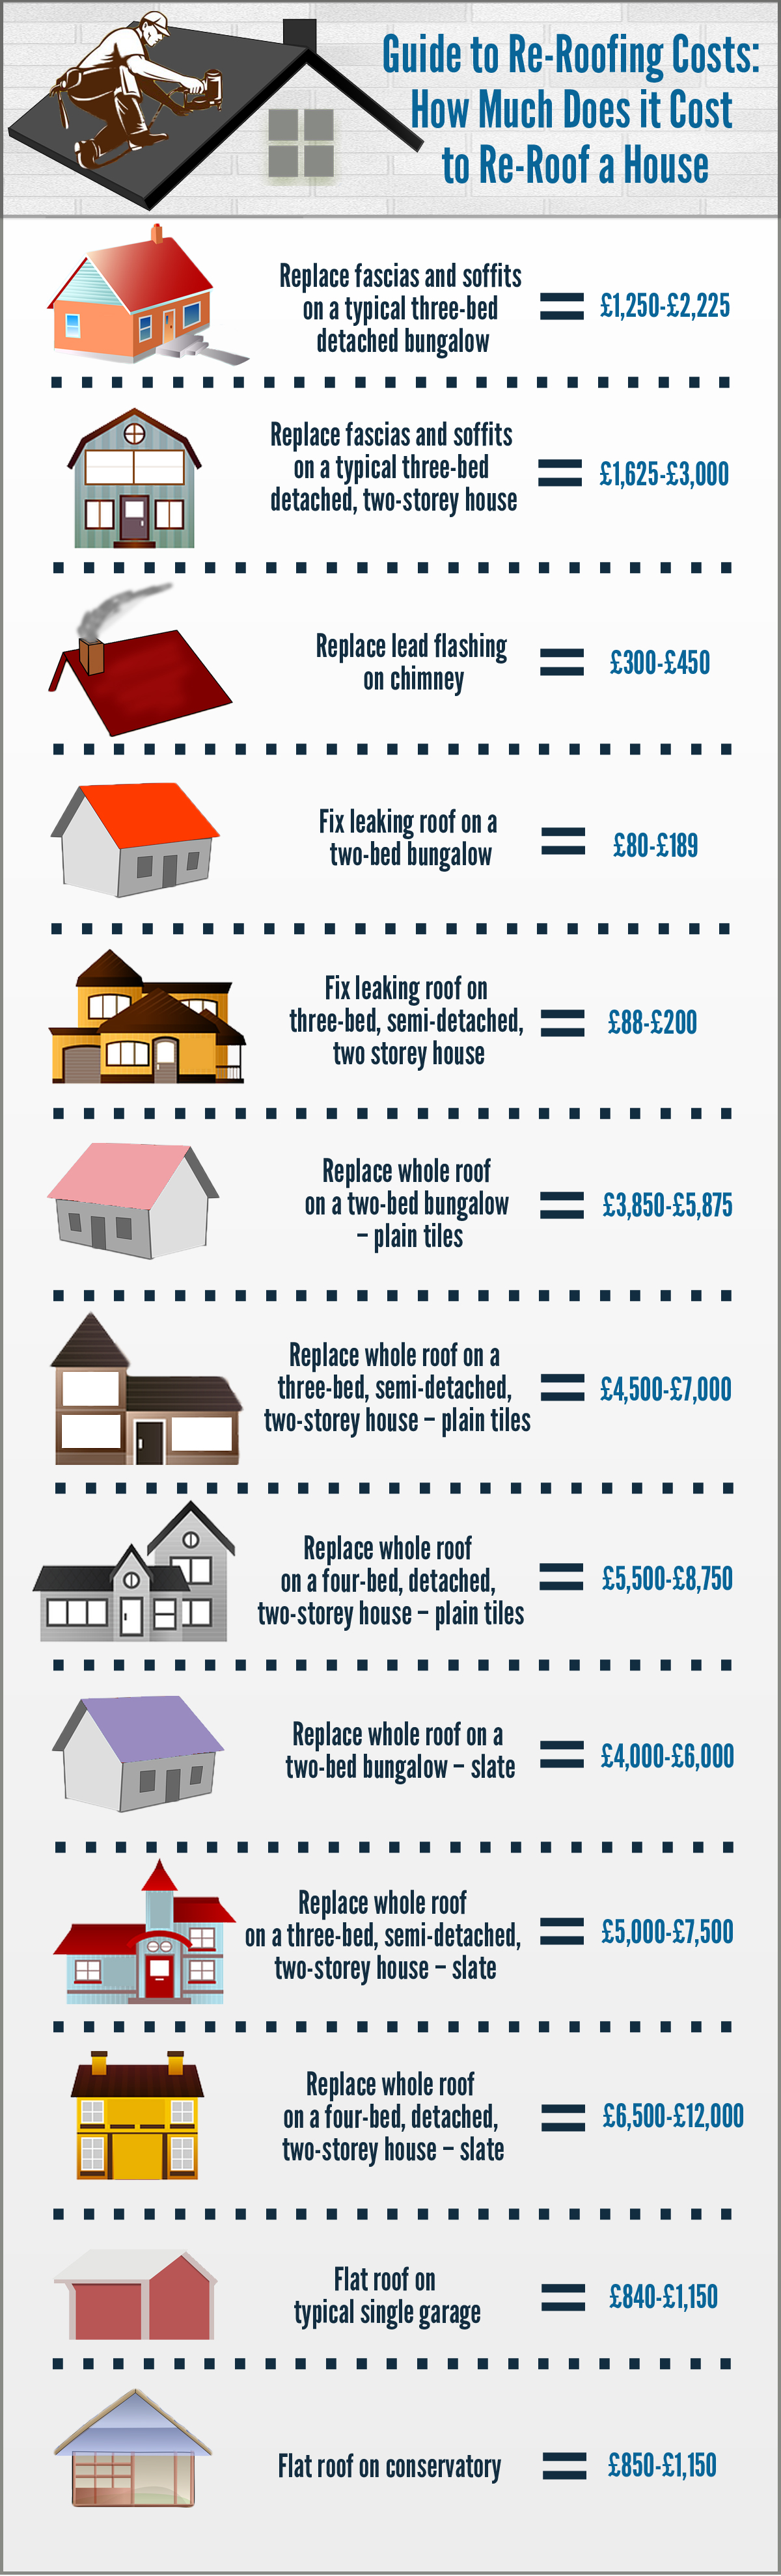 Guide To Re Roofing Costs How Much Does It Cost To Re Roof A House Homeimprovement Quote Com Roof Cost Roof Roofing